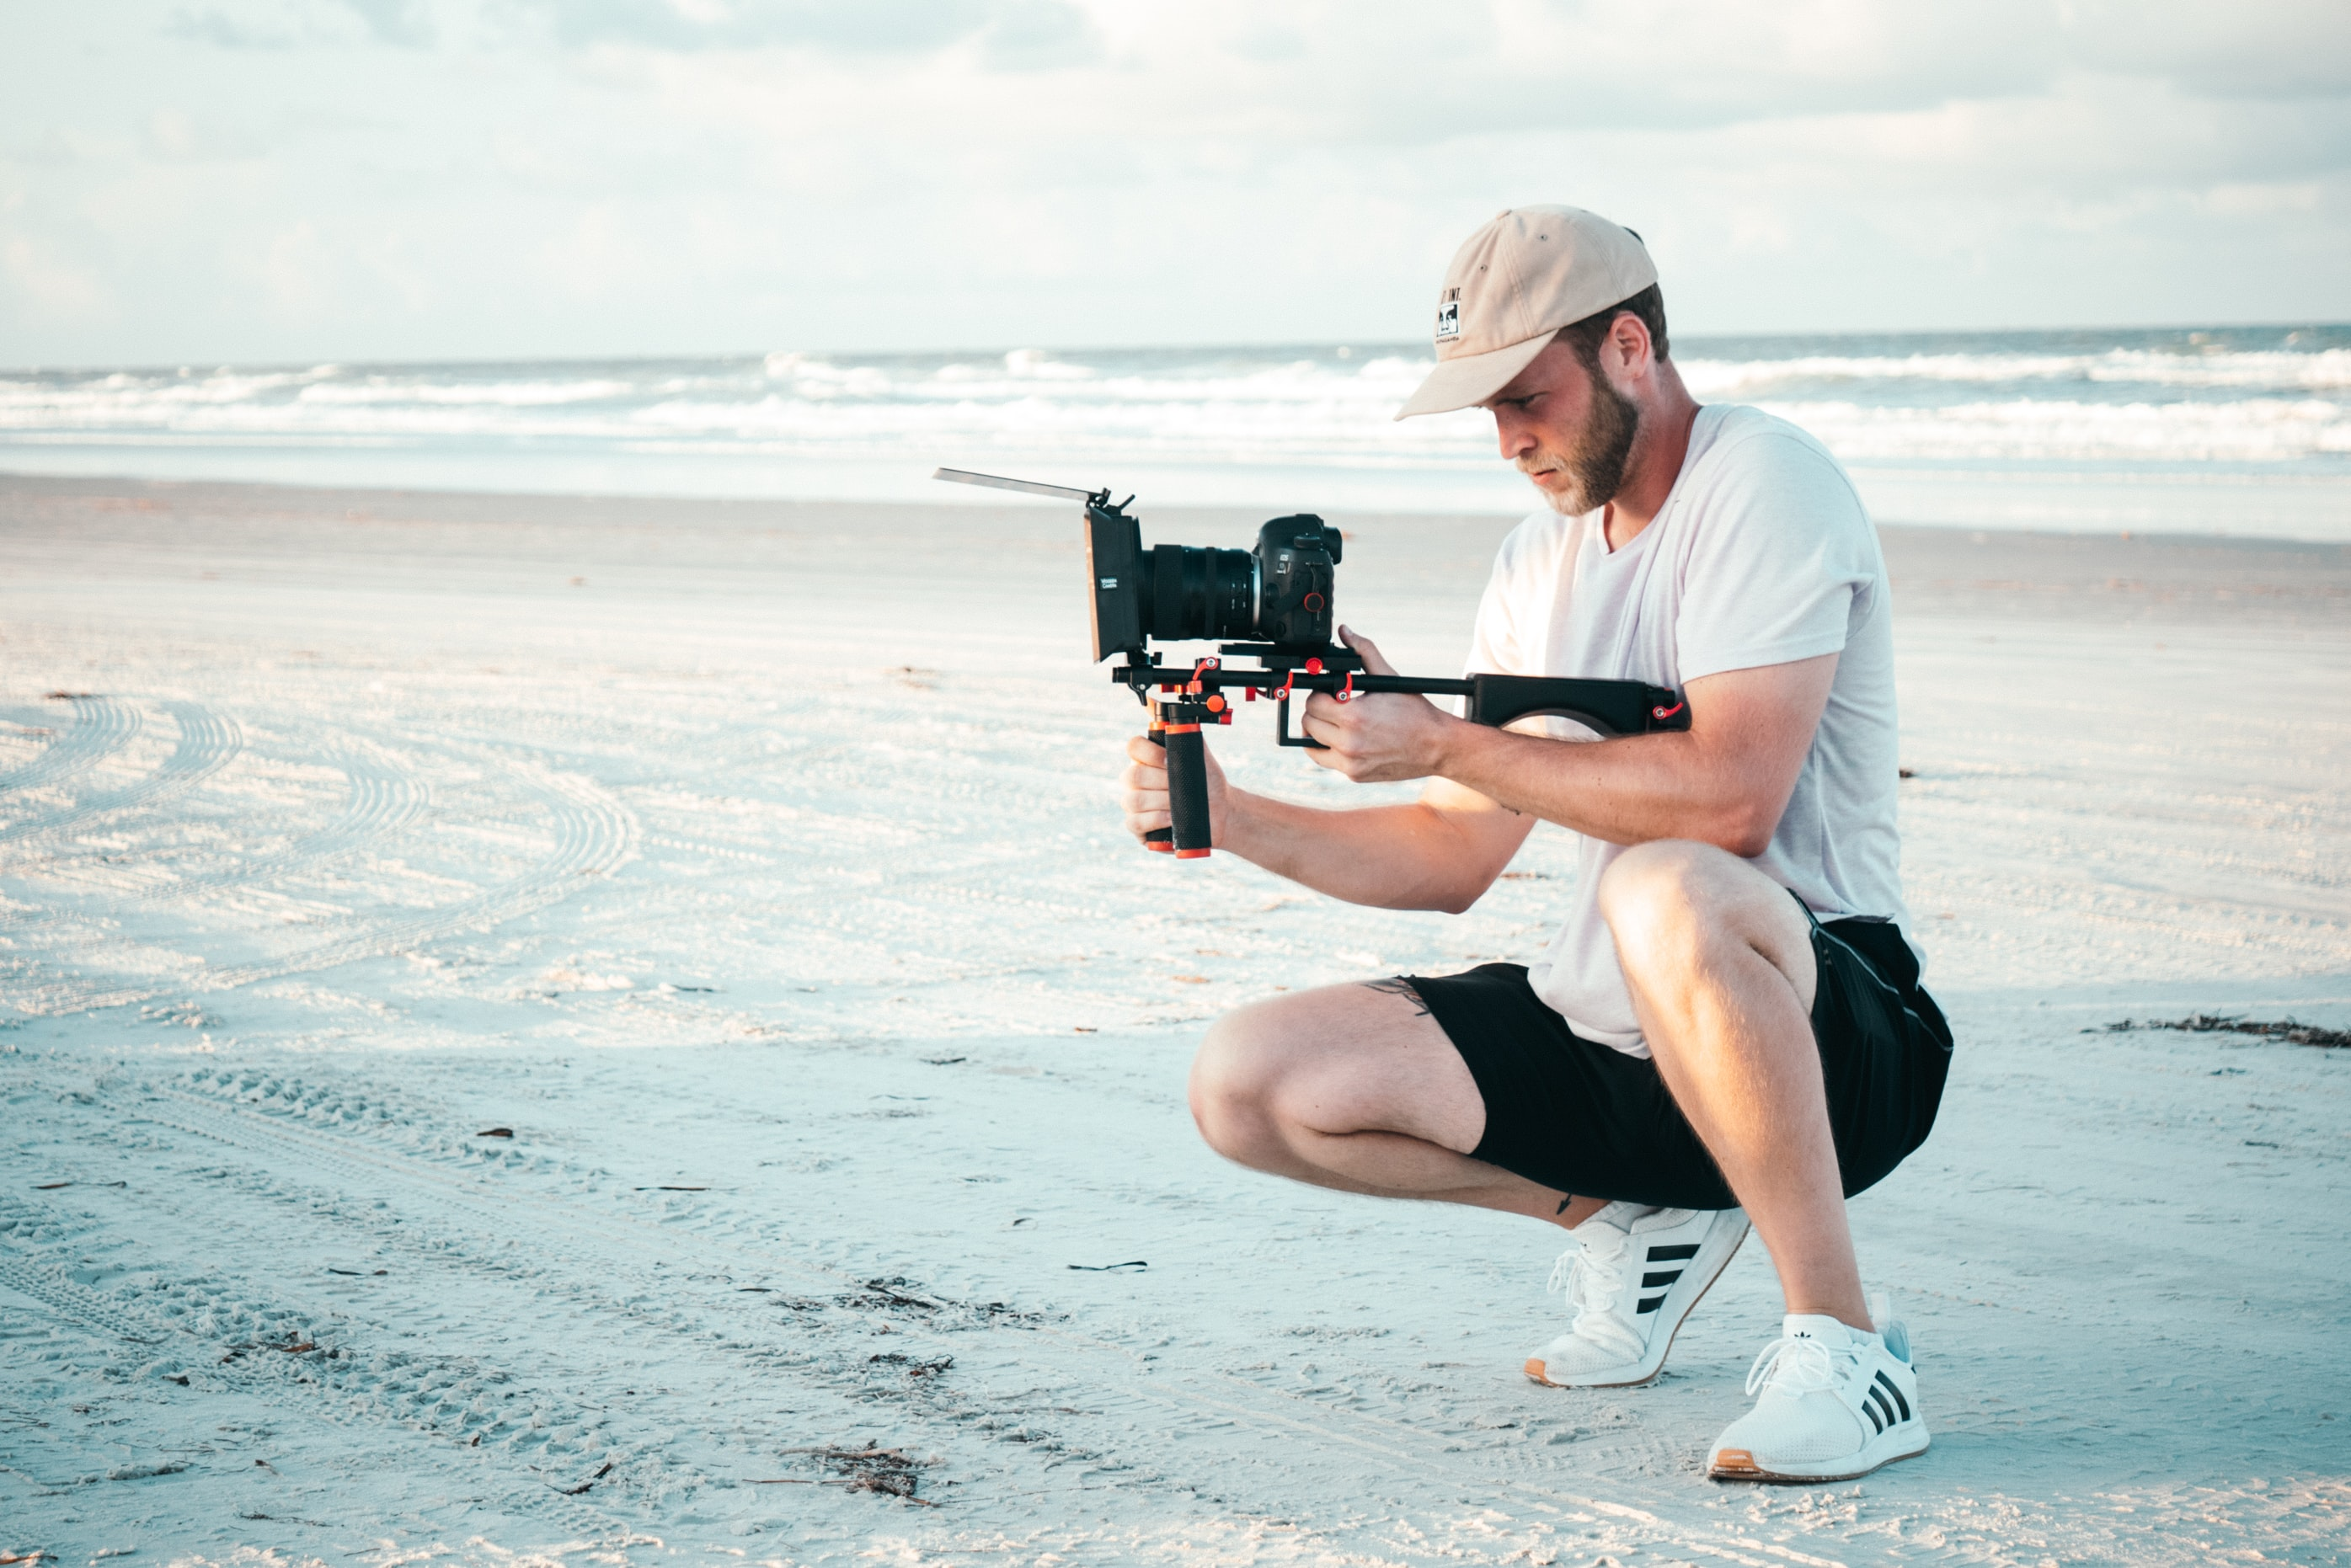 Some Winning Video Distribution Strategies You Should Know - by Donna Maurer